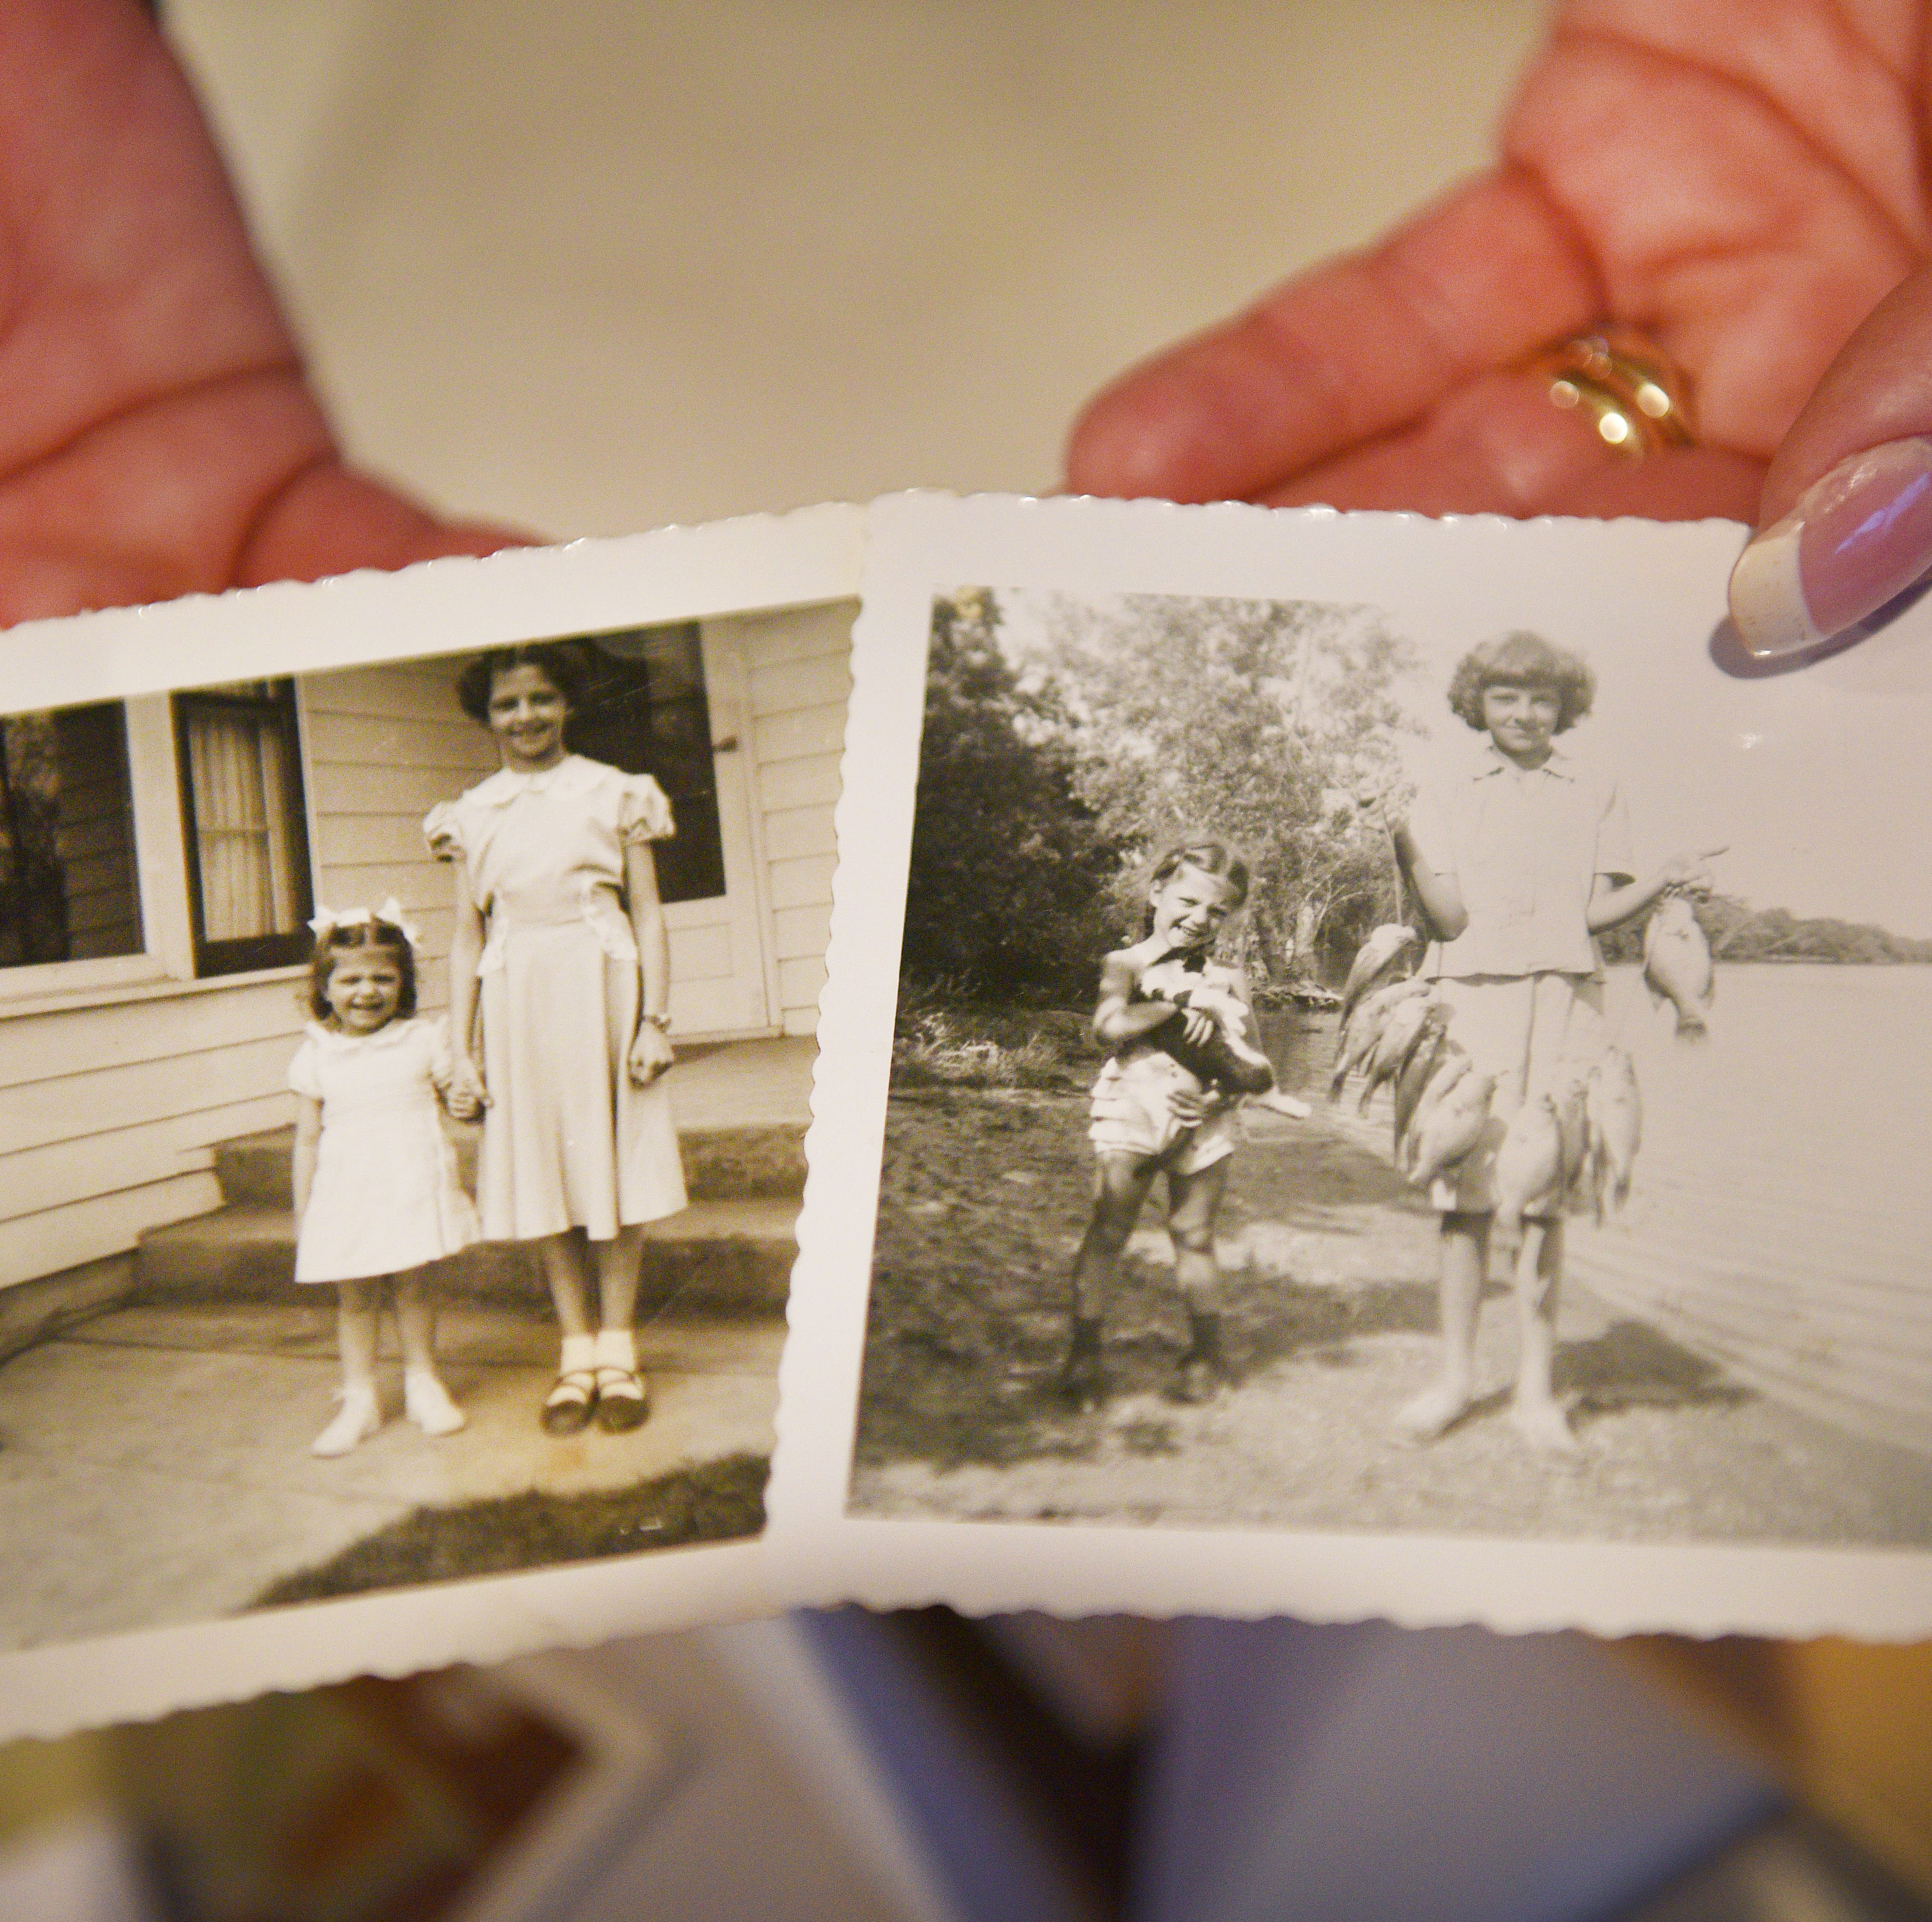 New leads emerge about Sioux Falls woman who vanished 45 years ago